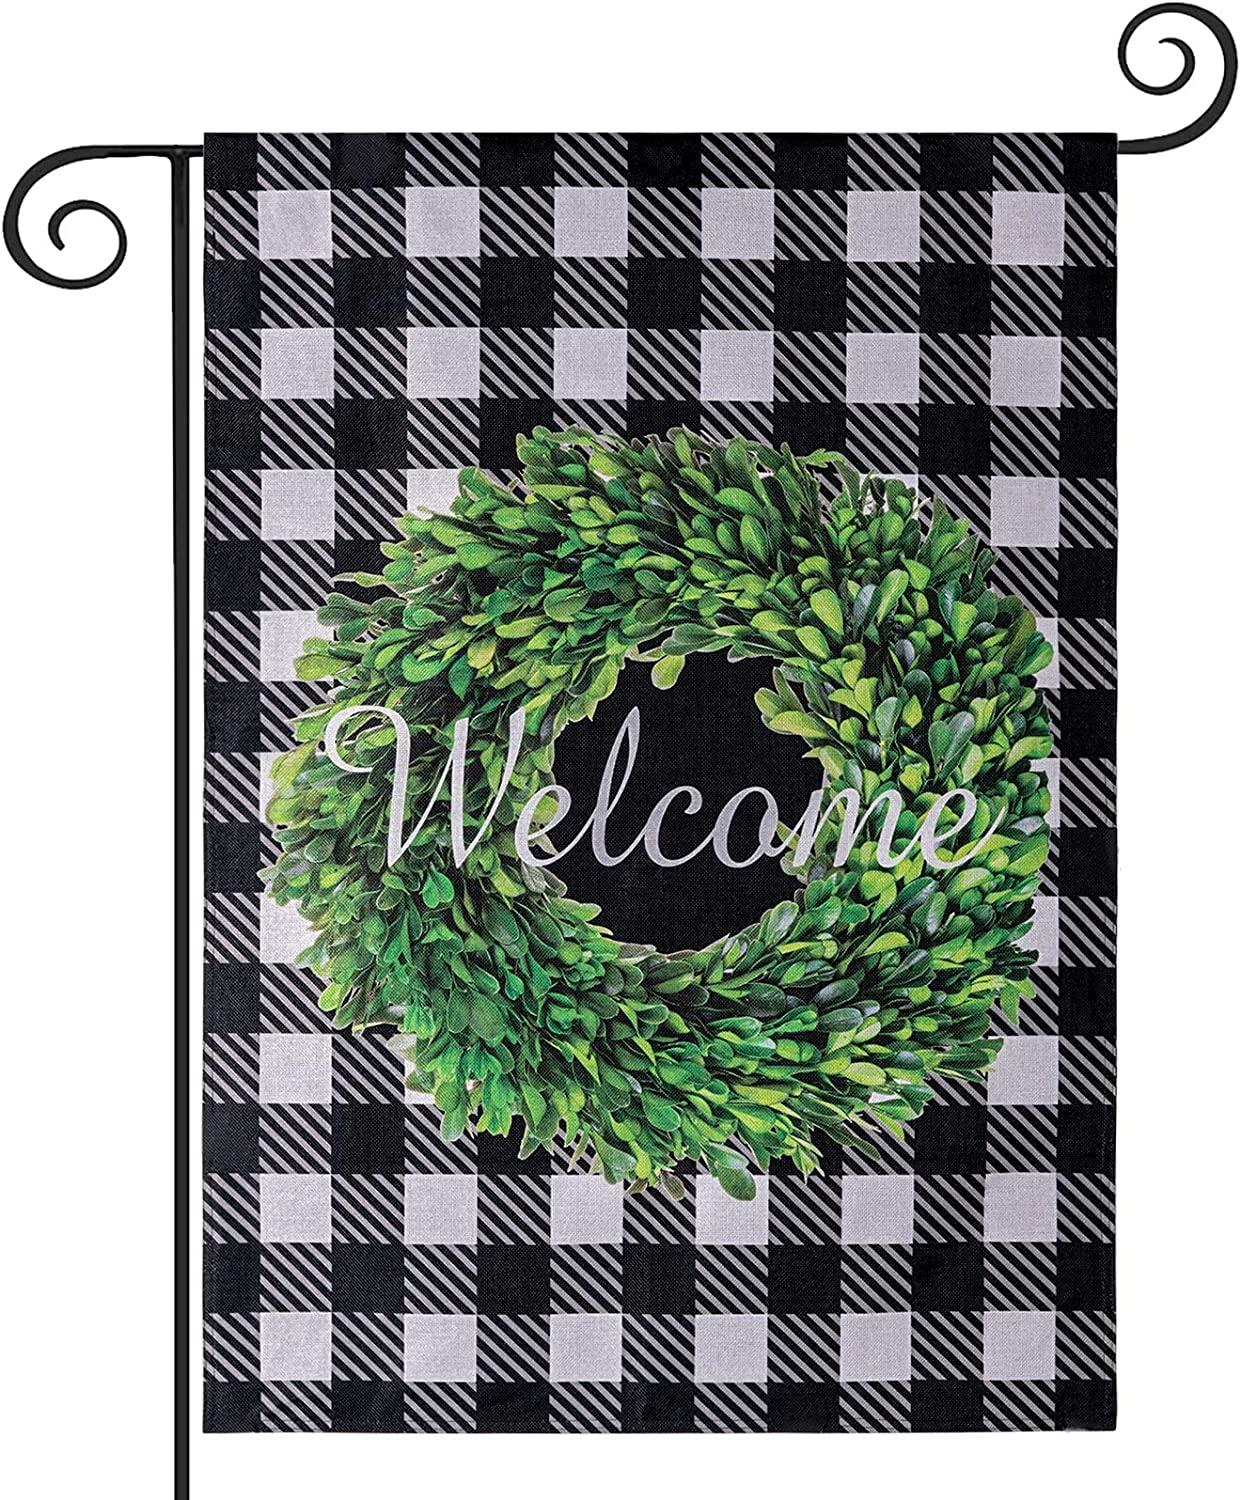 PHITRIC Boxwood Wreath Welcome Garden Flag, Vertical Double Sided Yard Flag Summer Fall Buffalo Check Plaid Outdoor Rustic Farmhouse Decor, 12.5x18 Inches